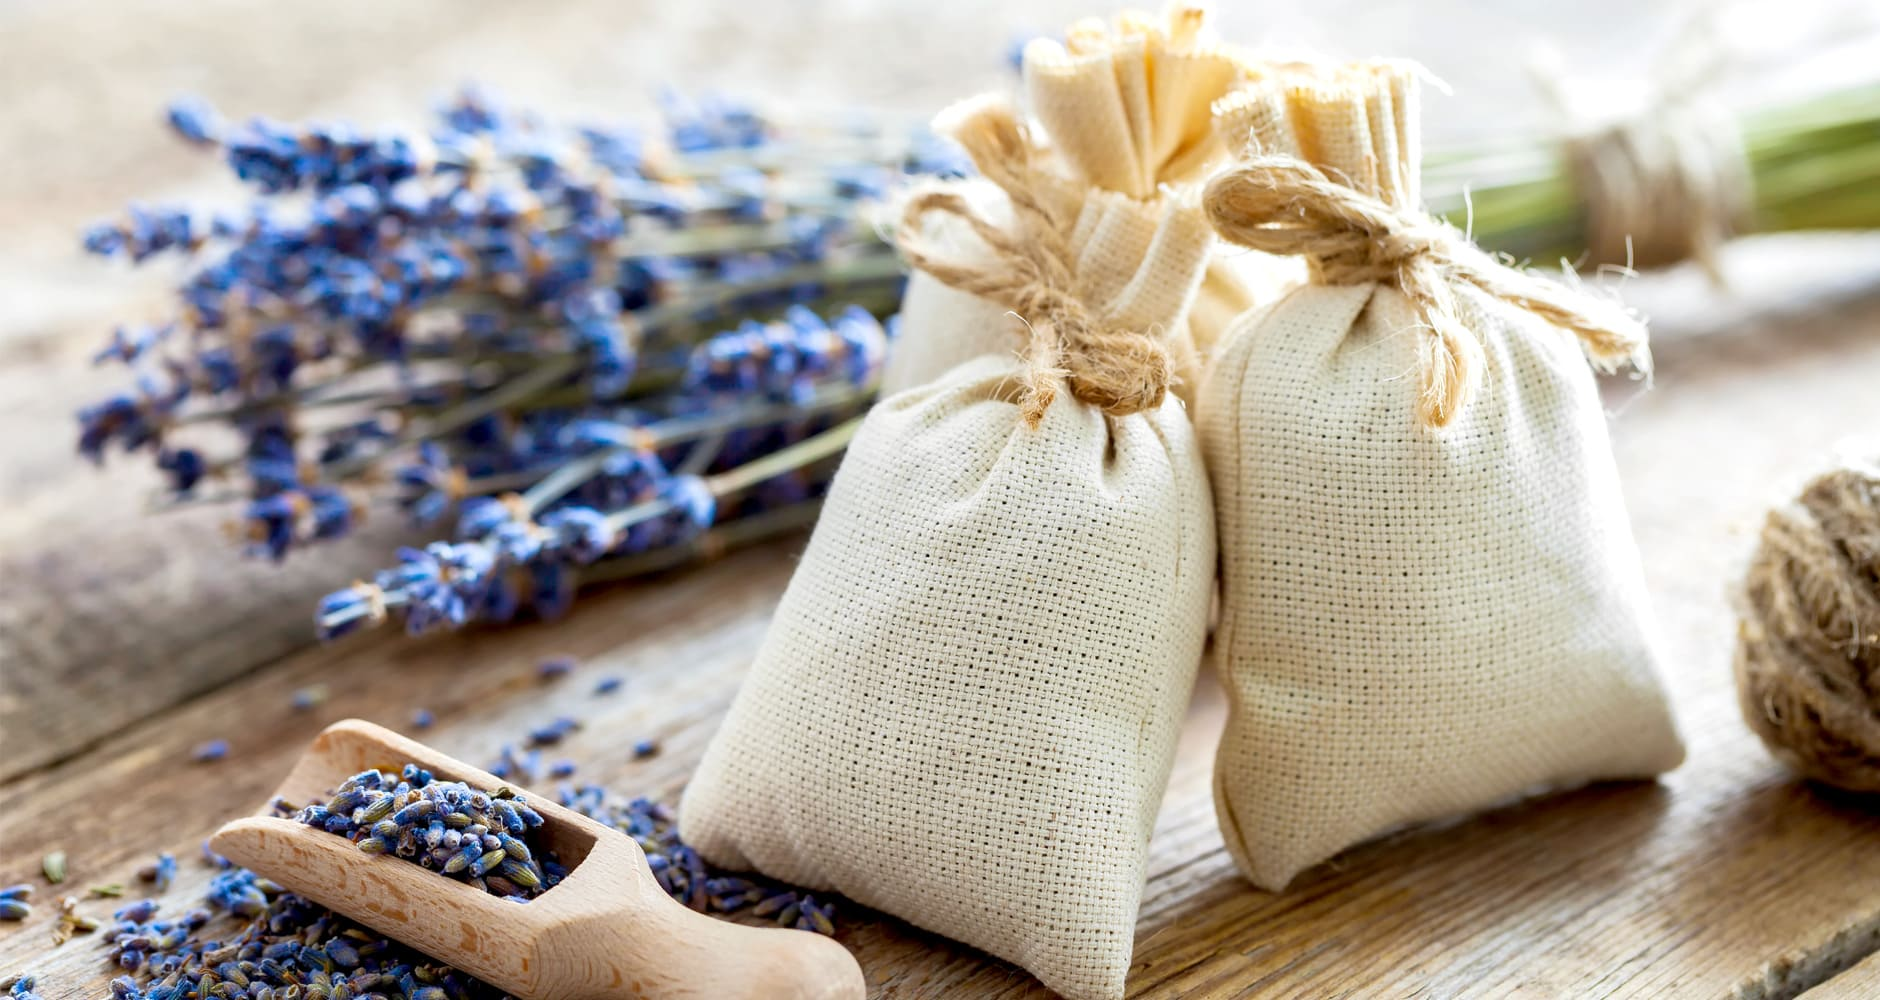 lavender sachet on wooden table with lavender buds